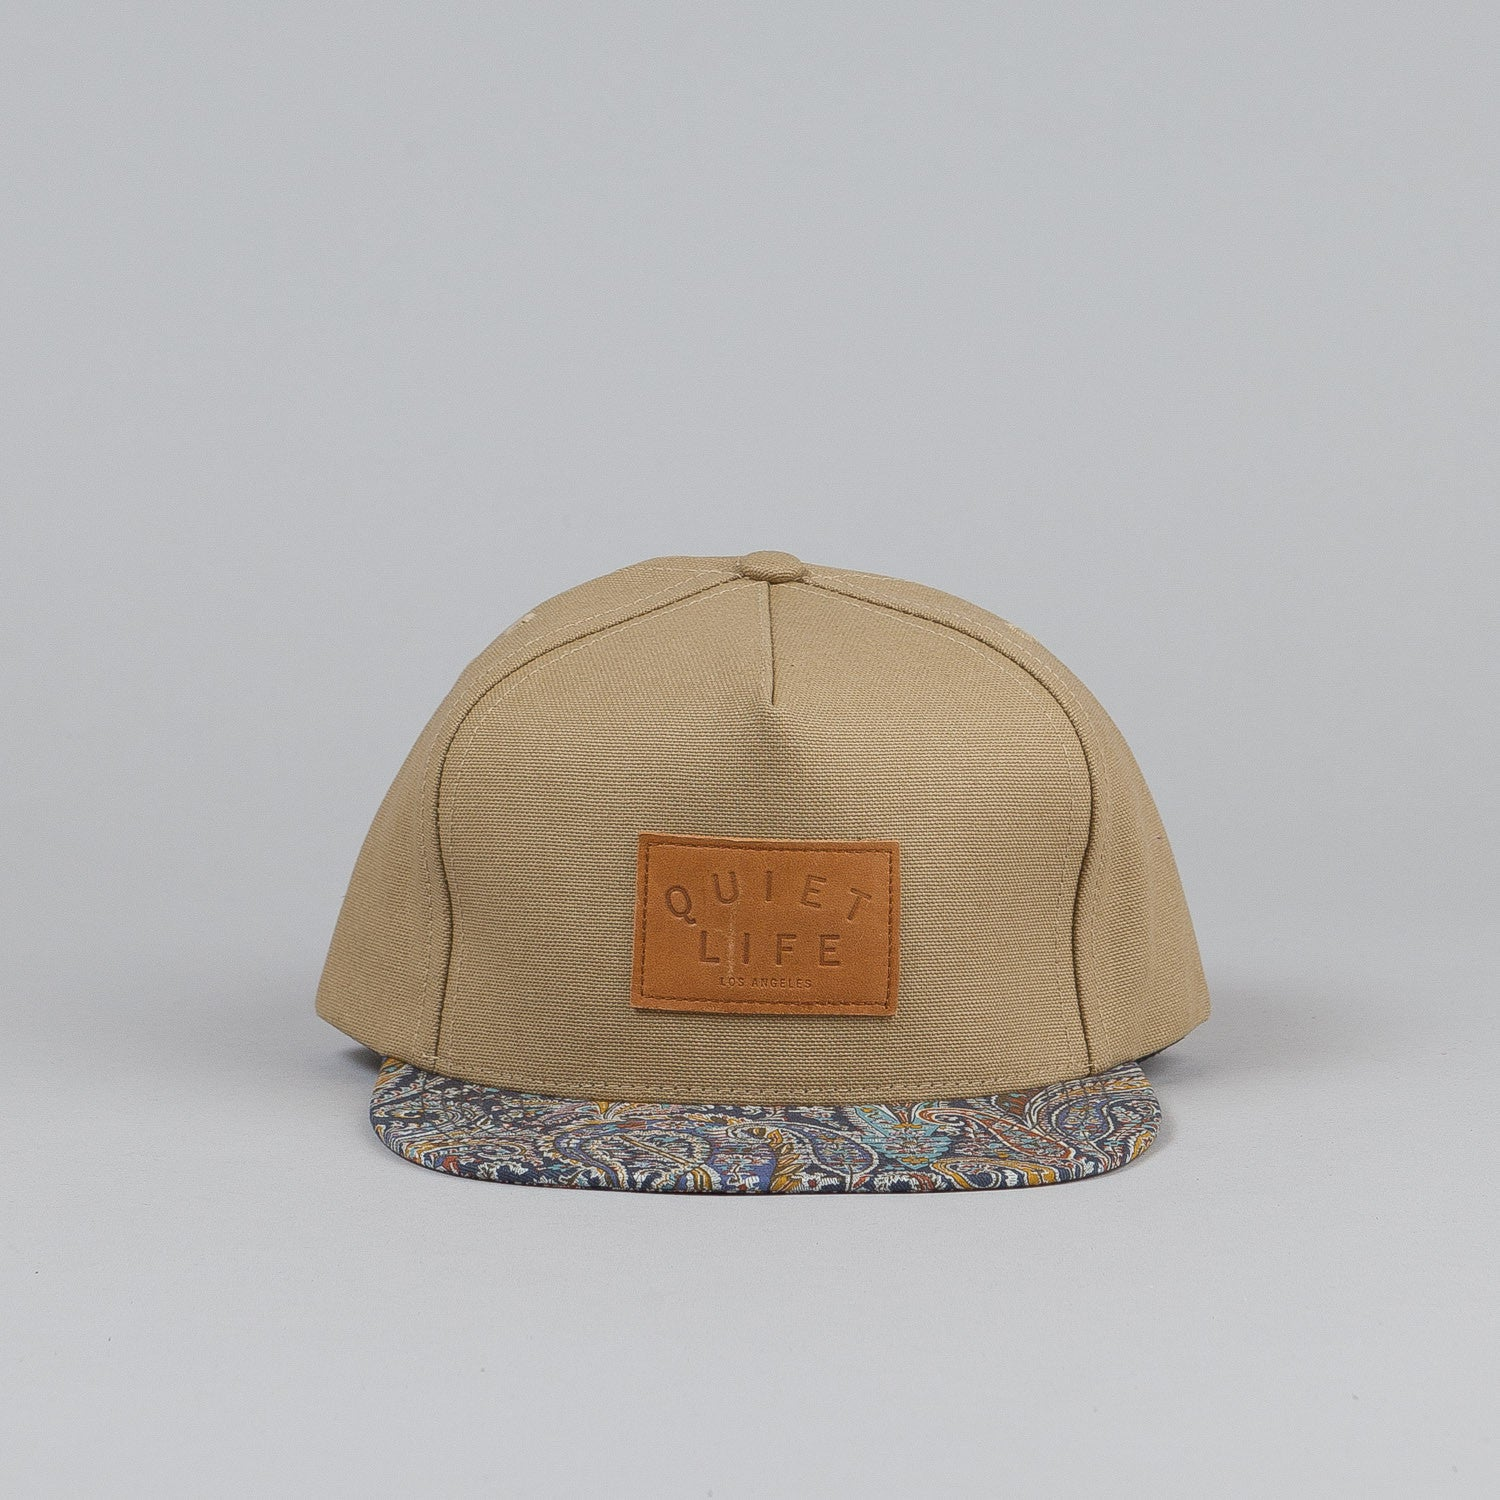 The Quiet Life Paisley Bill Snapback Cap Tan